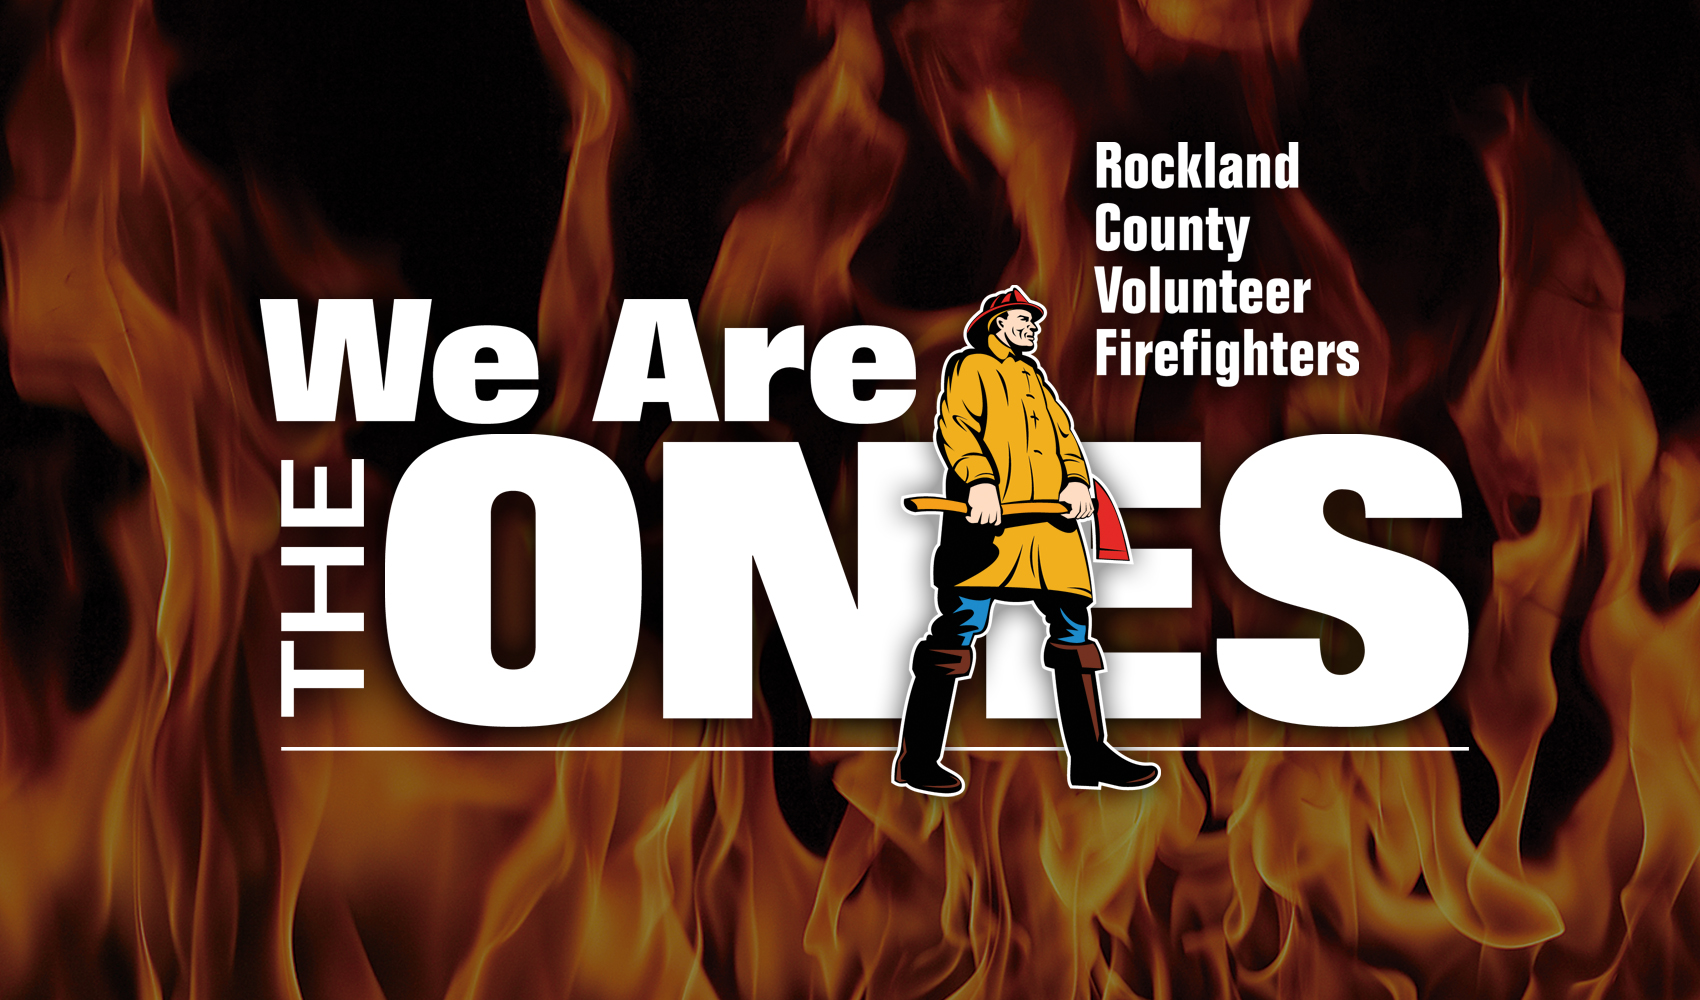 Rockland County Volunteer Emergency Services - Title Image